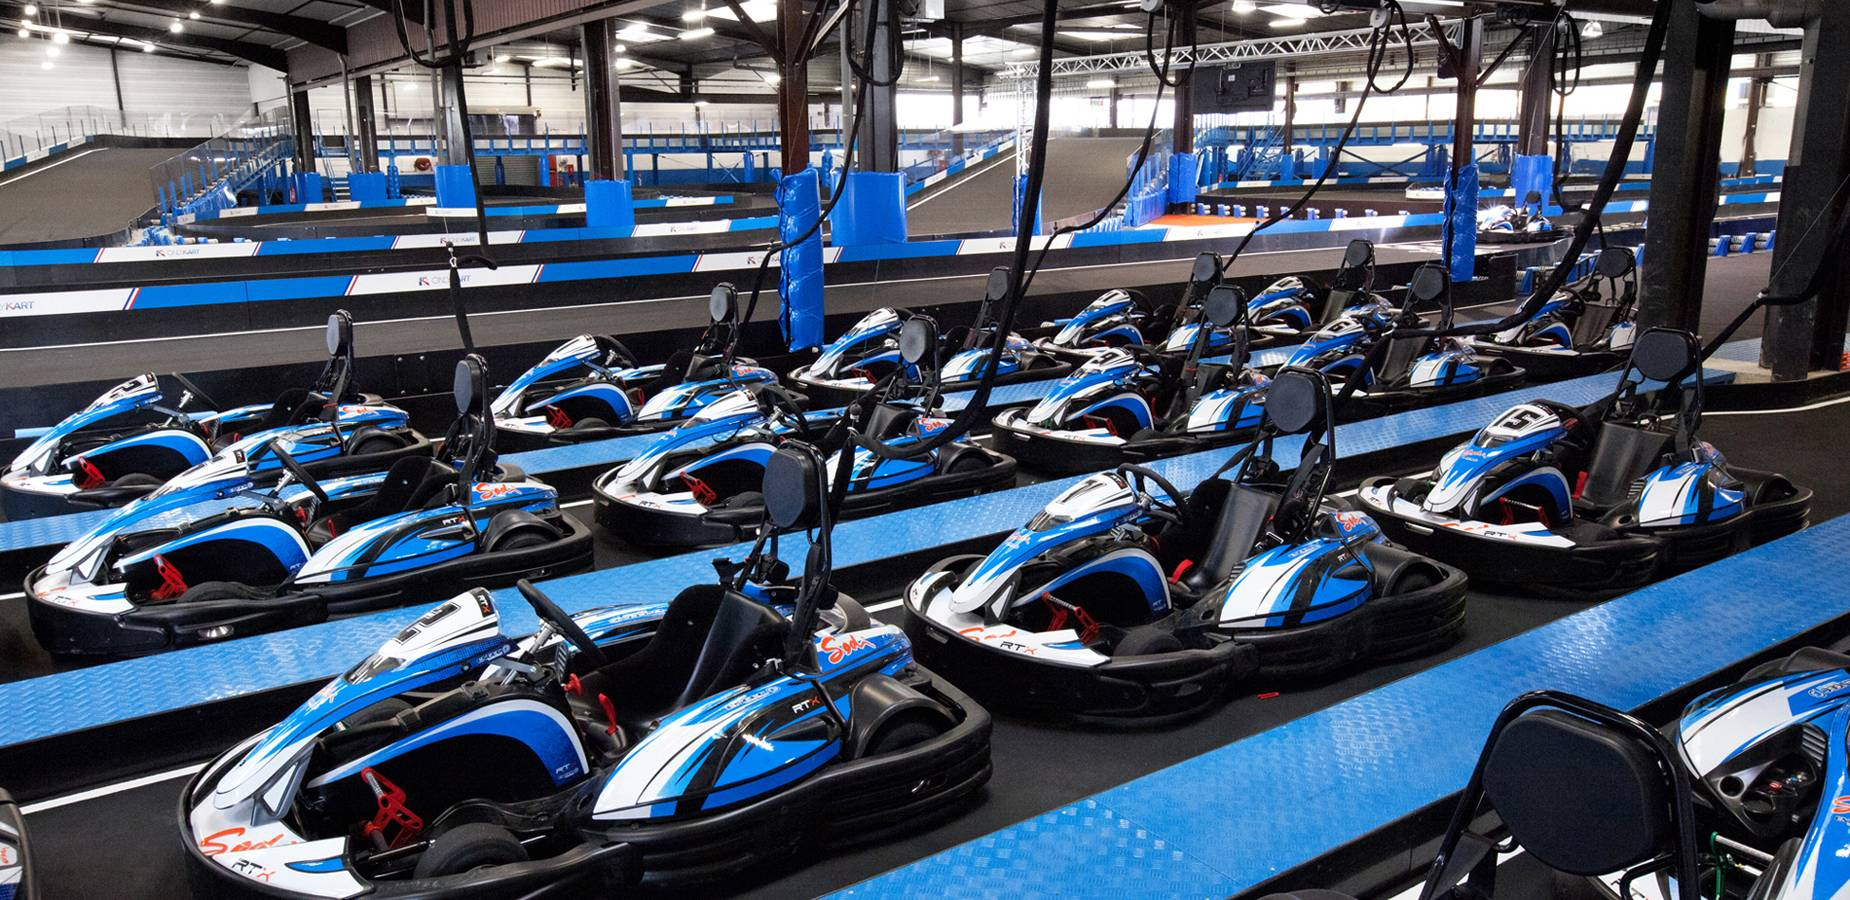 les avantages du karting indoor au karting outdoor sur lyon